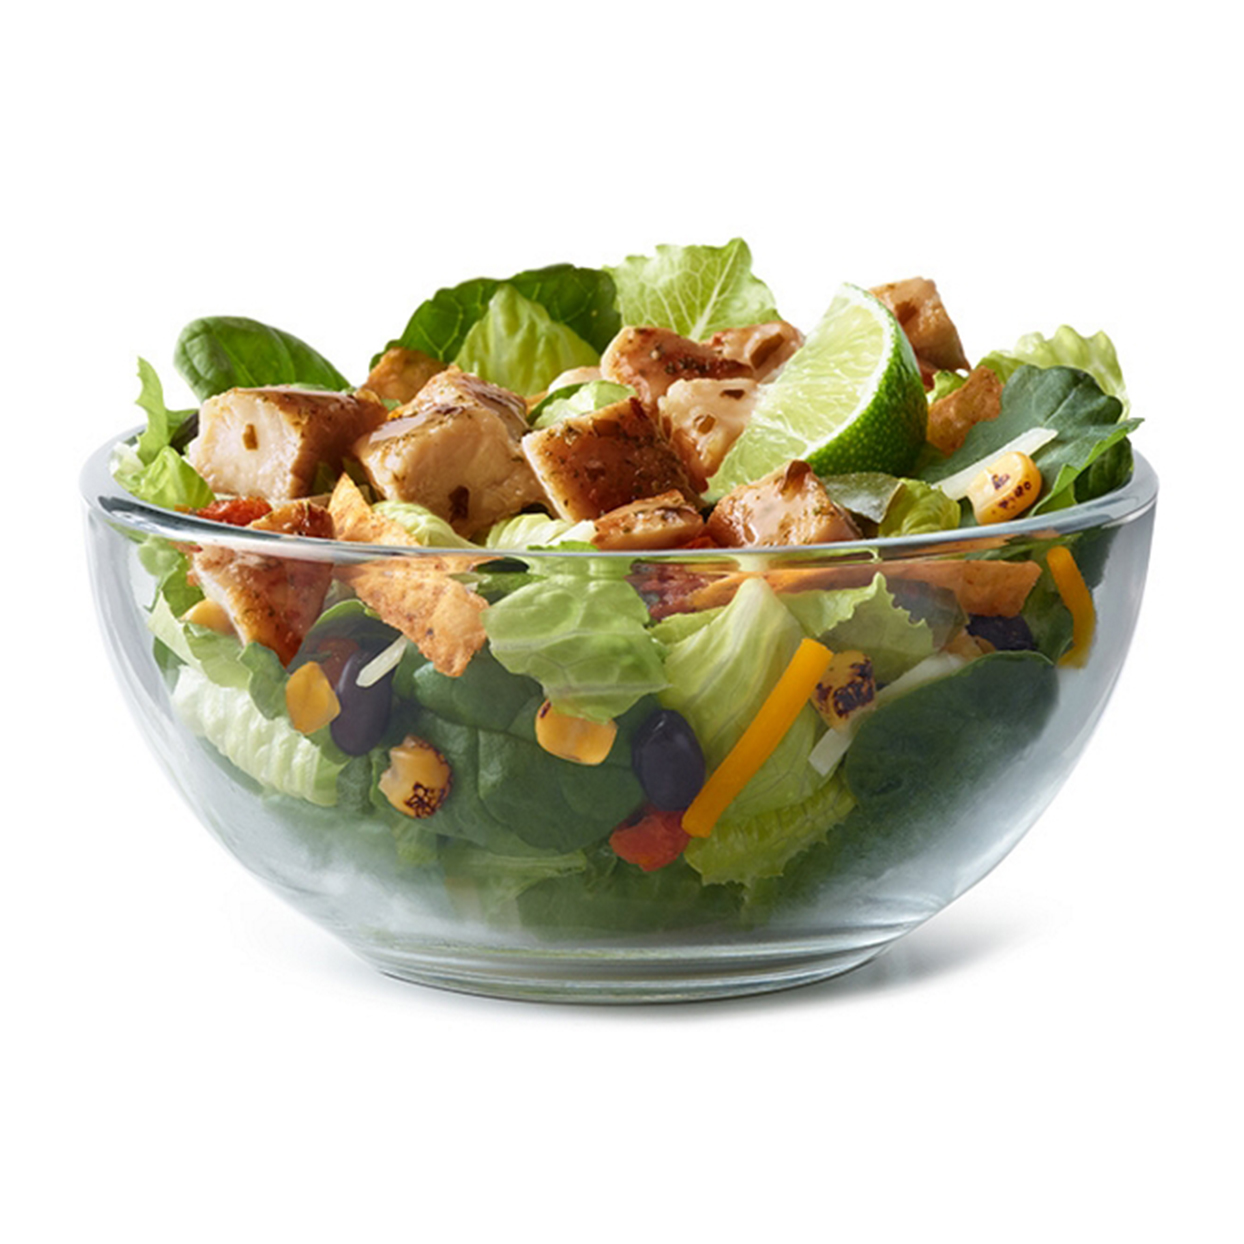 McDonald's grilled chicken salad